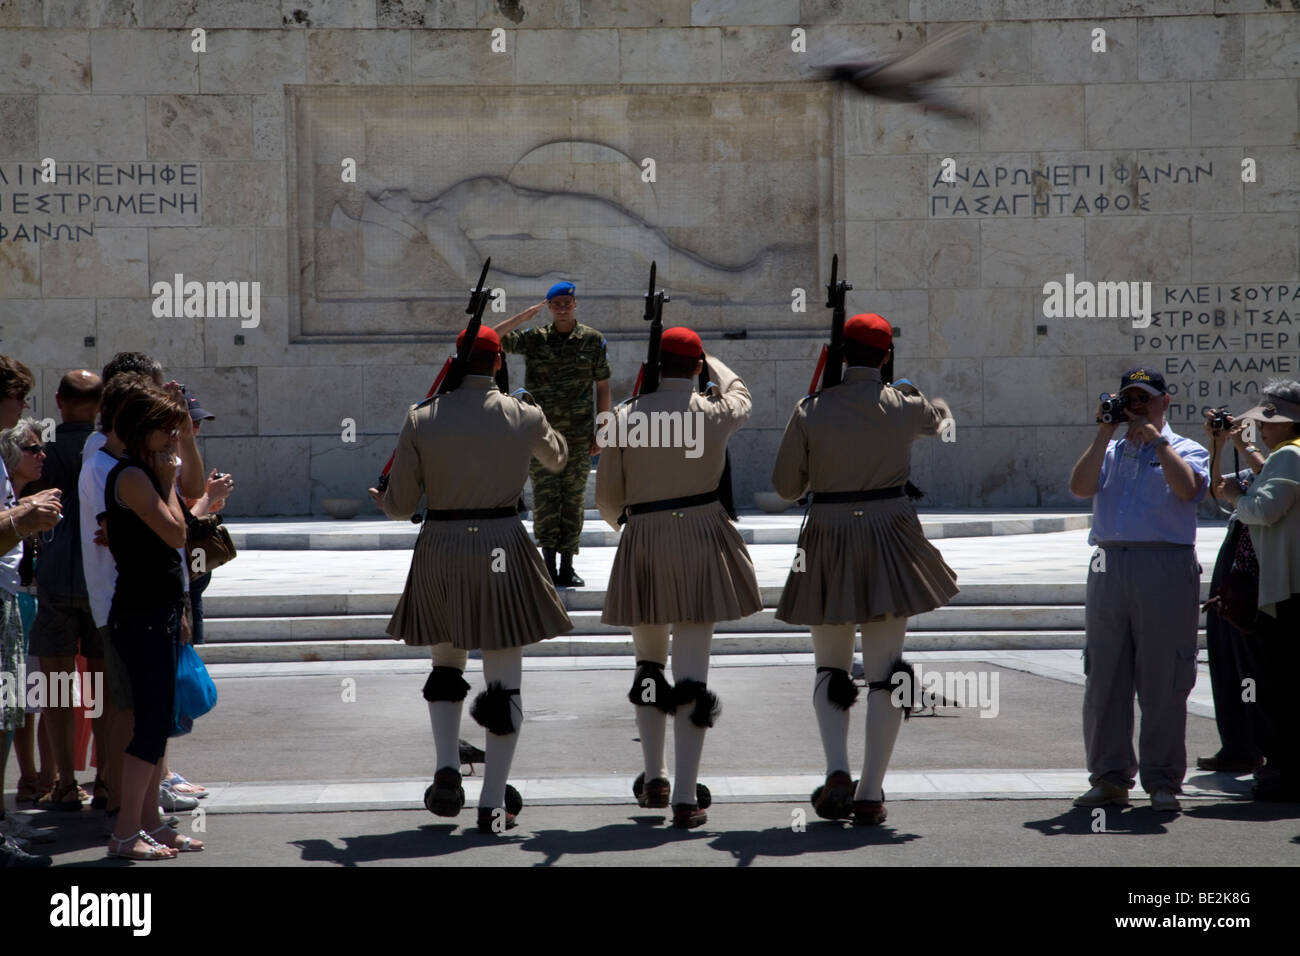 Evzones Vouli Parliament Building Syntagma Square Athens Greece Stock Photo